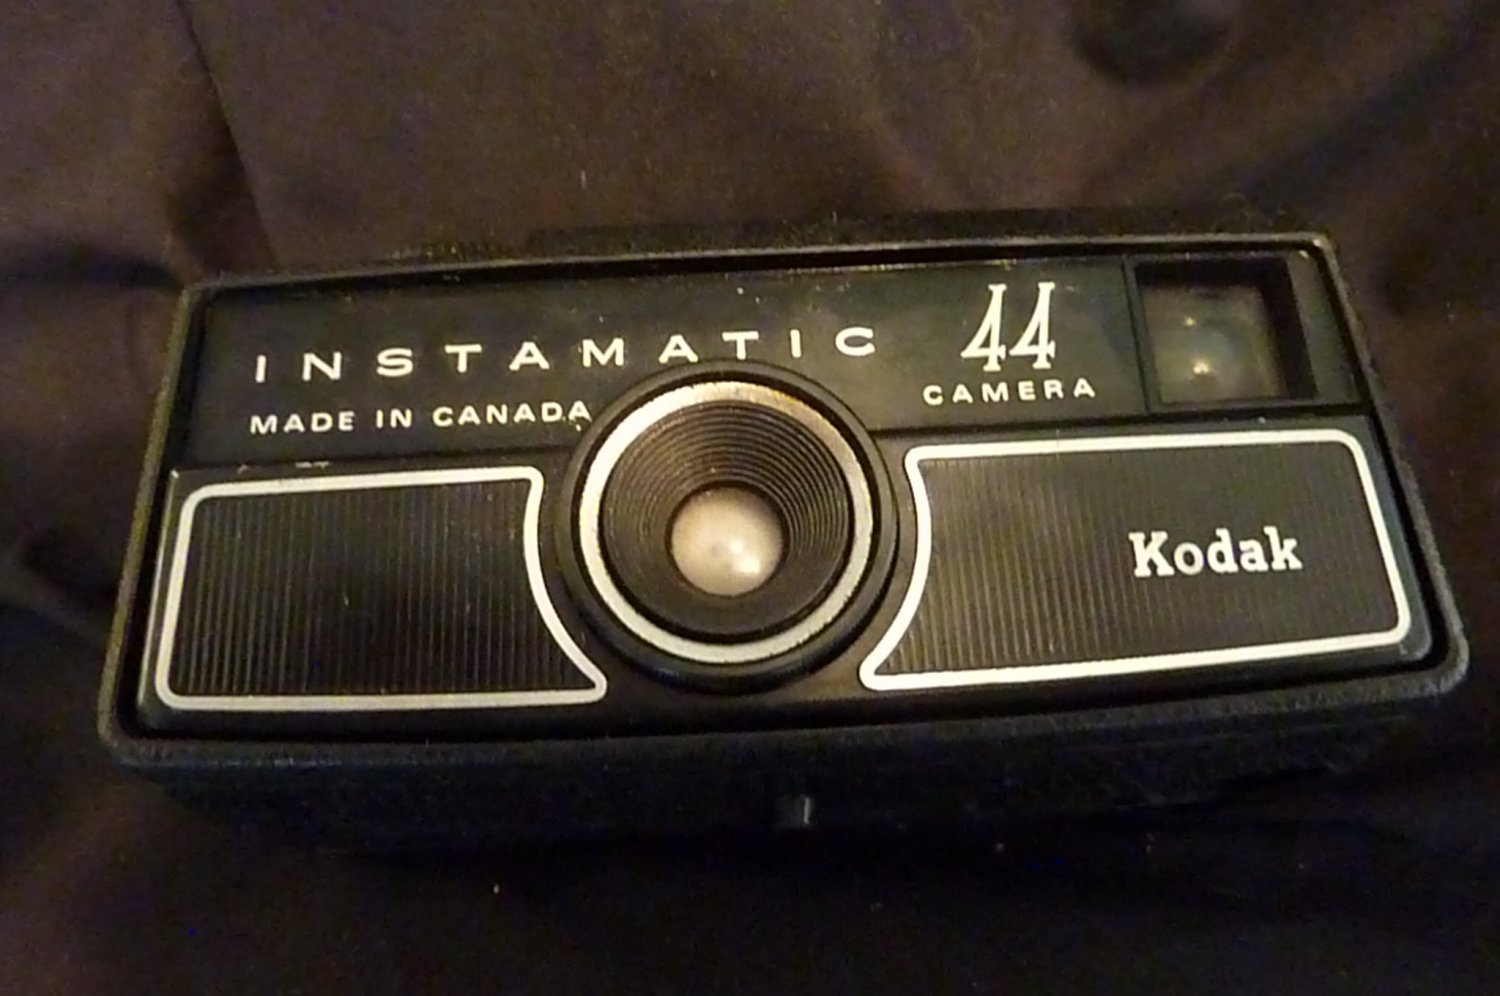 Kodak Instamatic 44 Camera